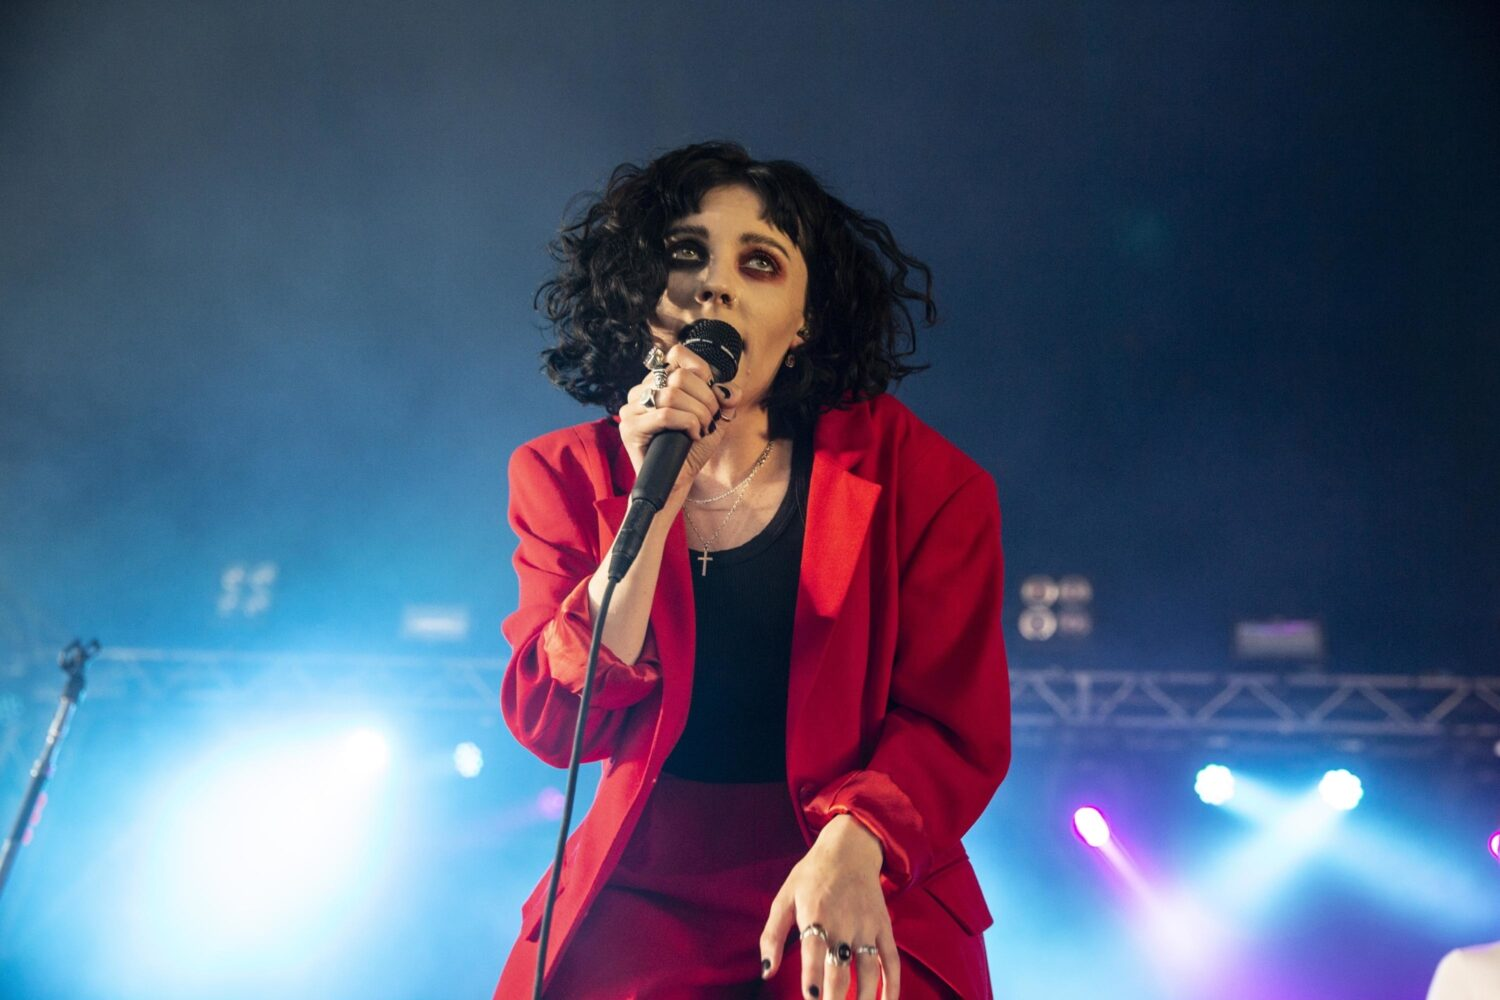 Pale Waves to support Muse at massive stadium shows